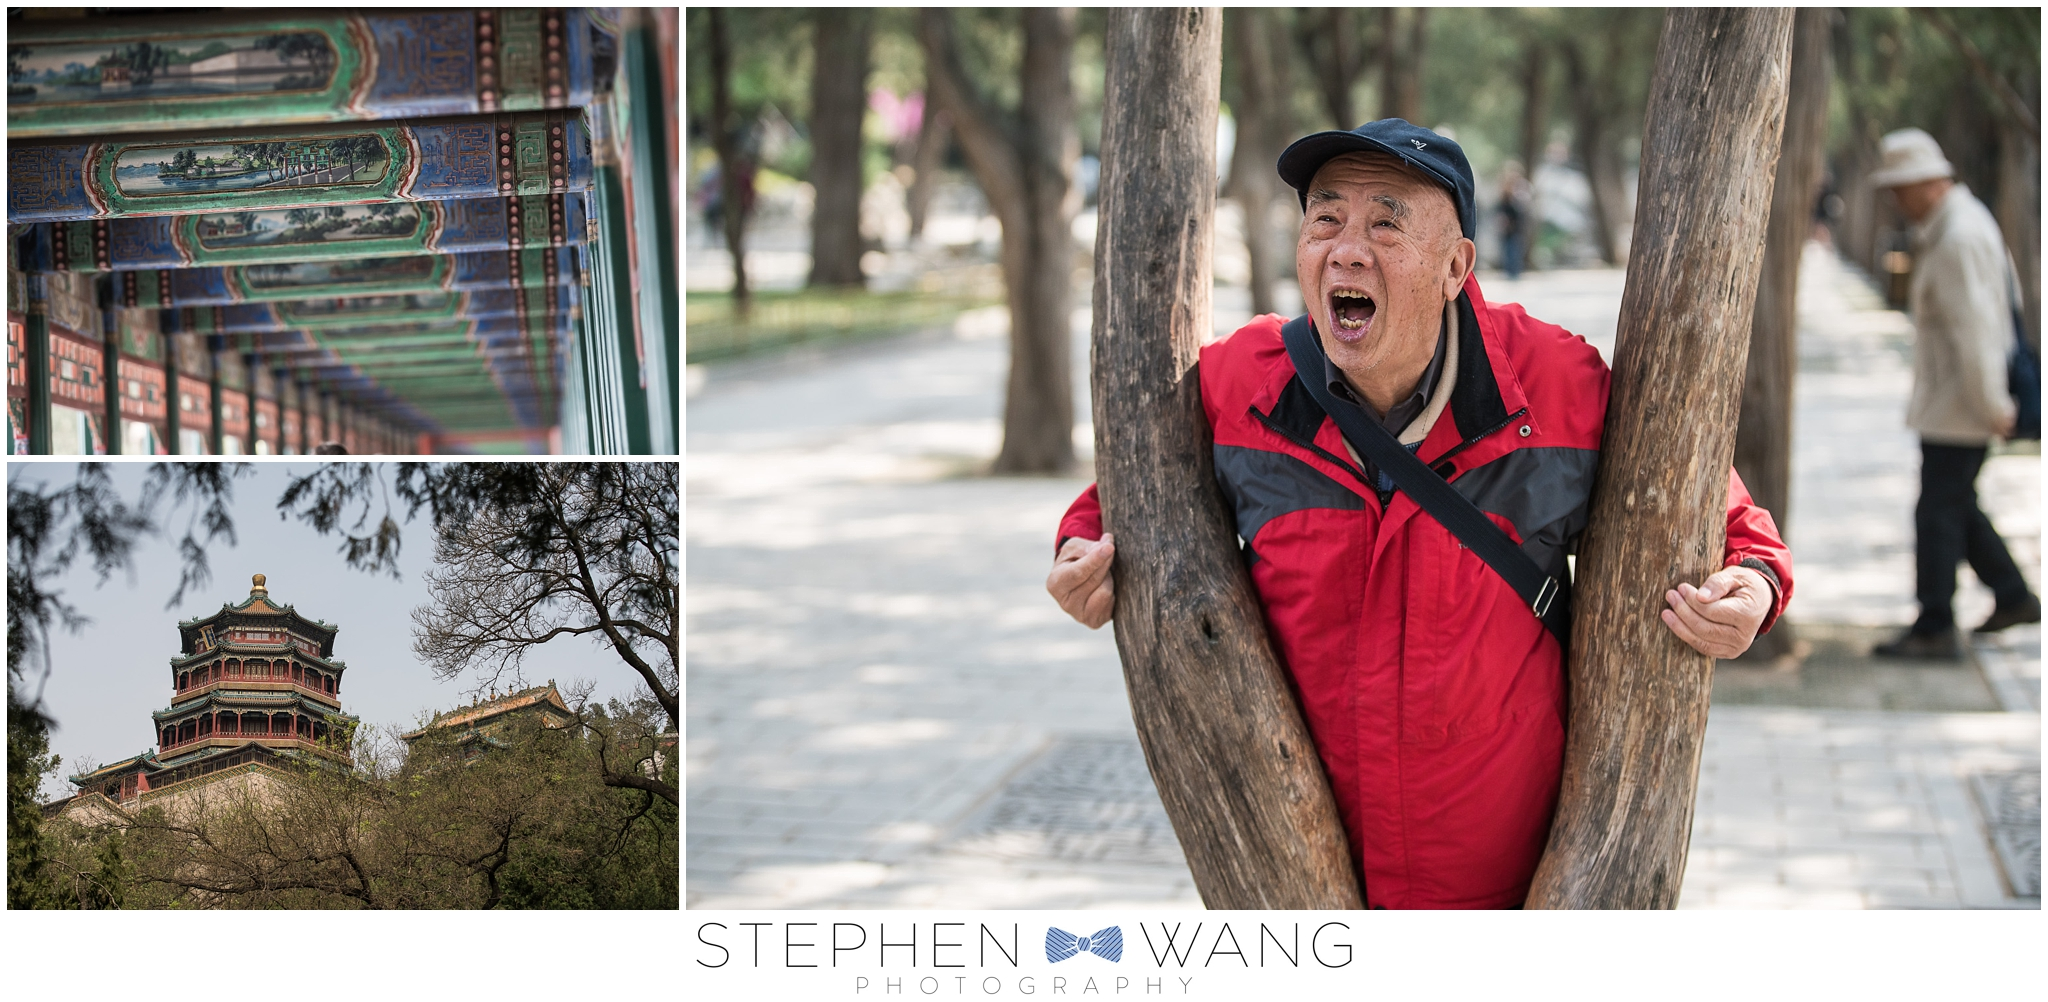 At the Summer Palace, being amused by red jacket man, the world's longest corridor, and an impressive pagoda.